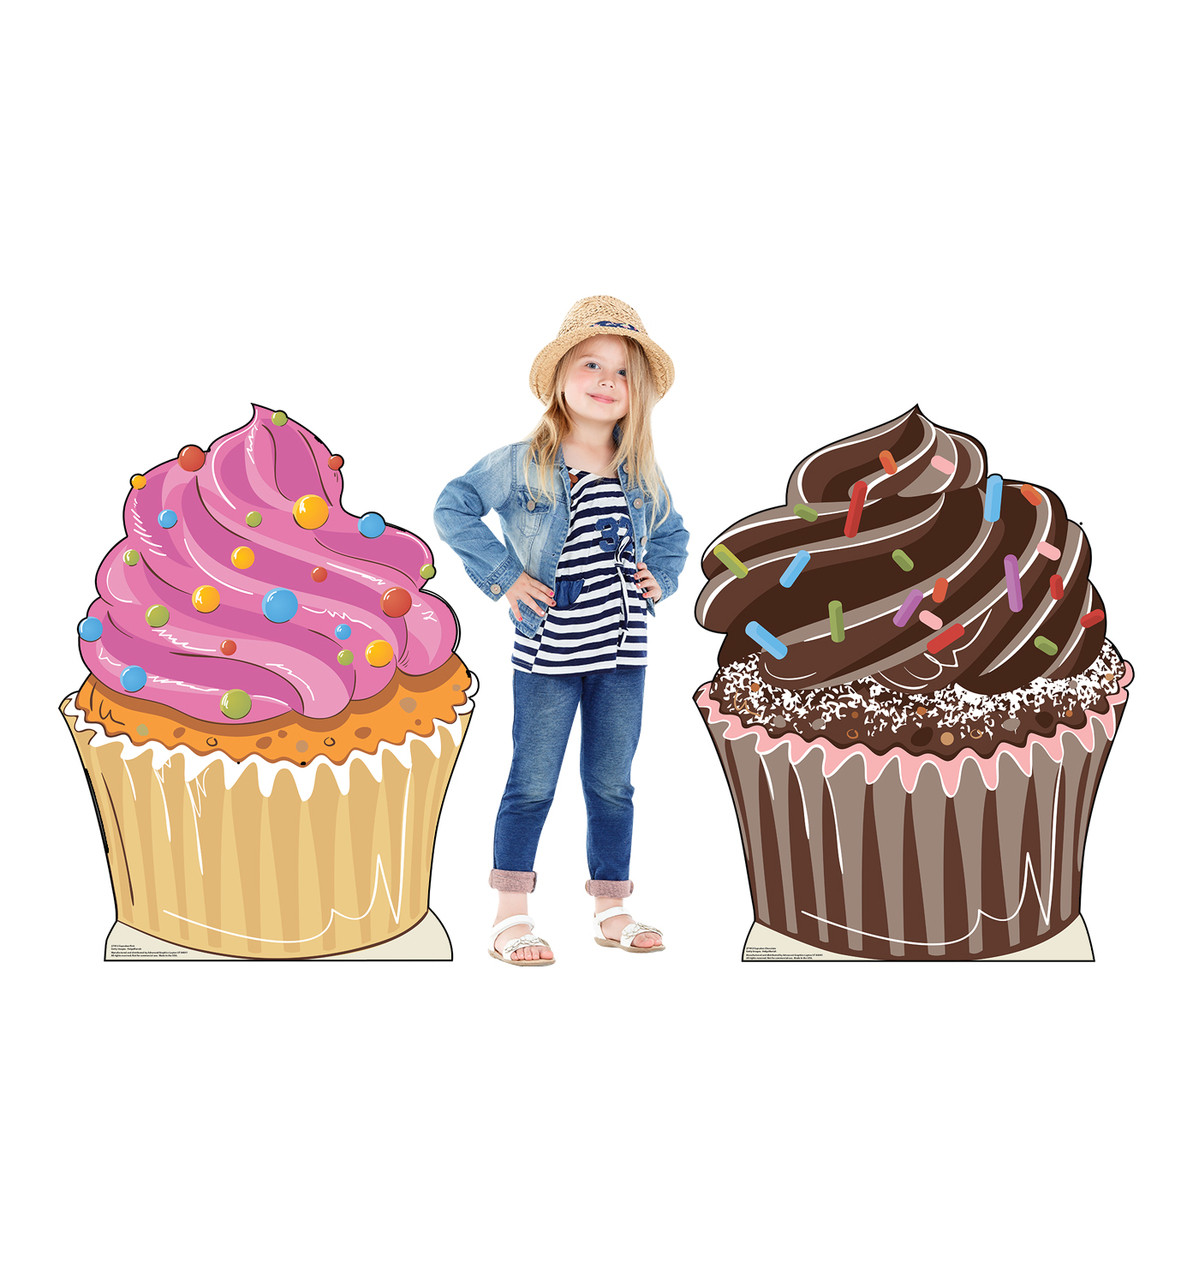 Life-size cardboard standee of Cupcakes with model.